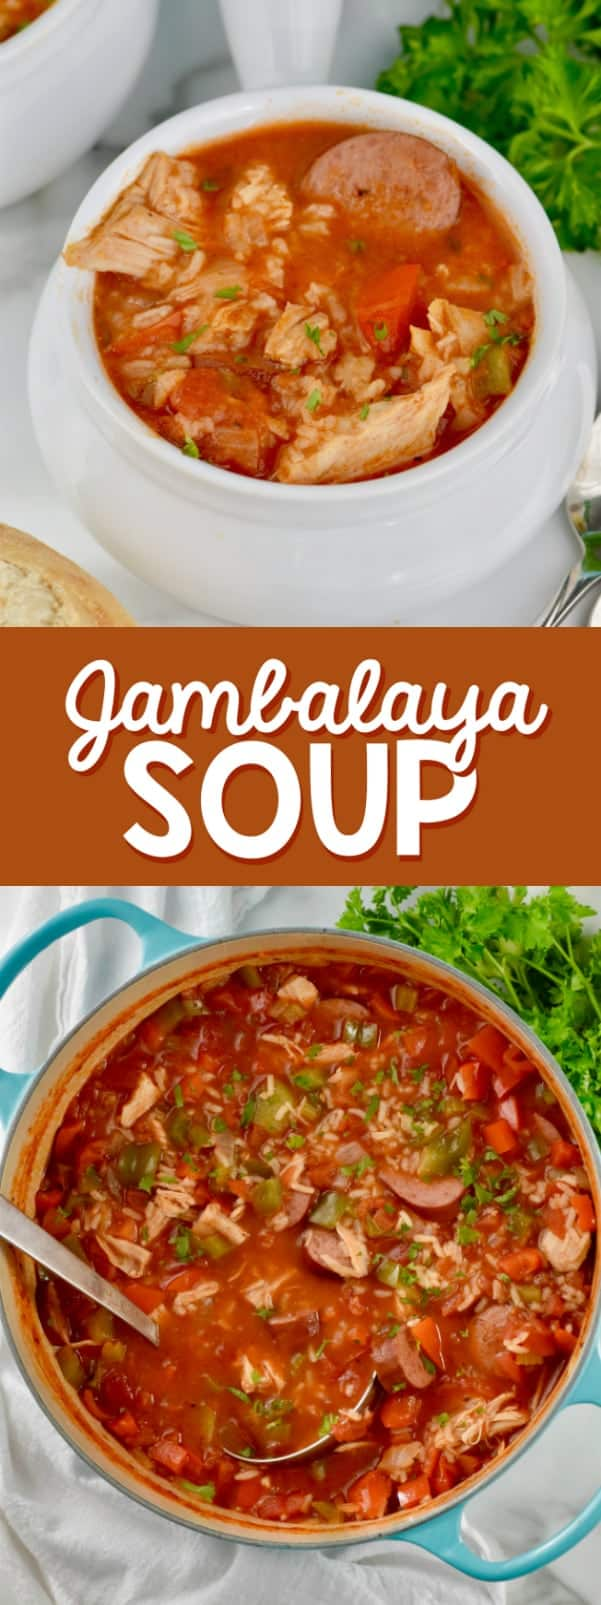 The Jambalaya Soup are in a bowl and a blue pot showing the different meats and vegetables.